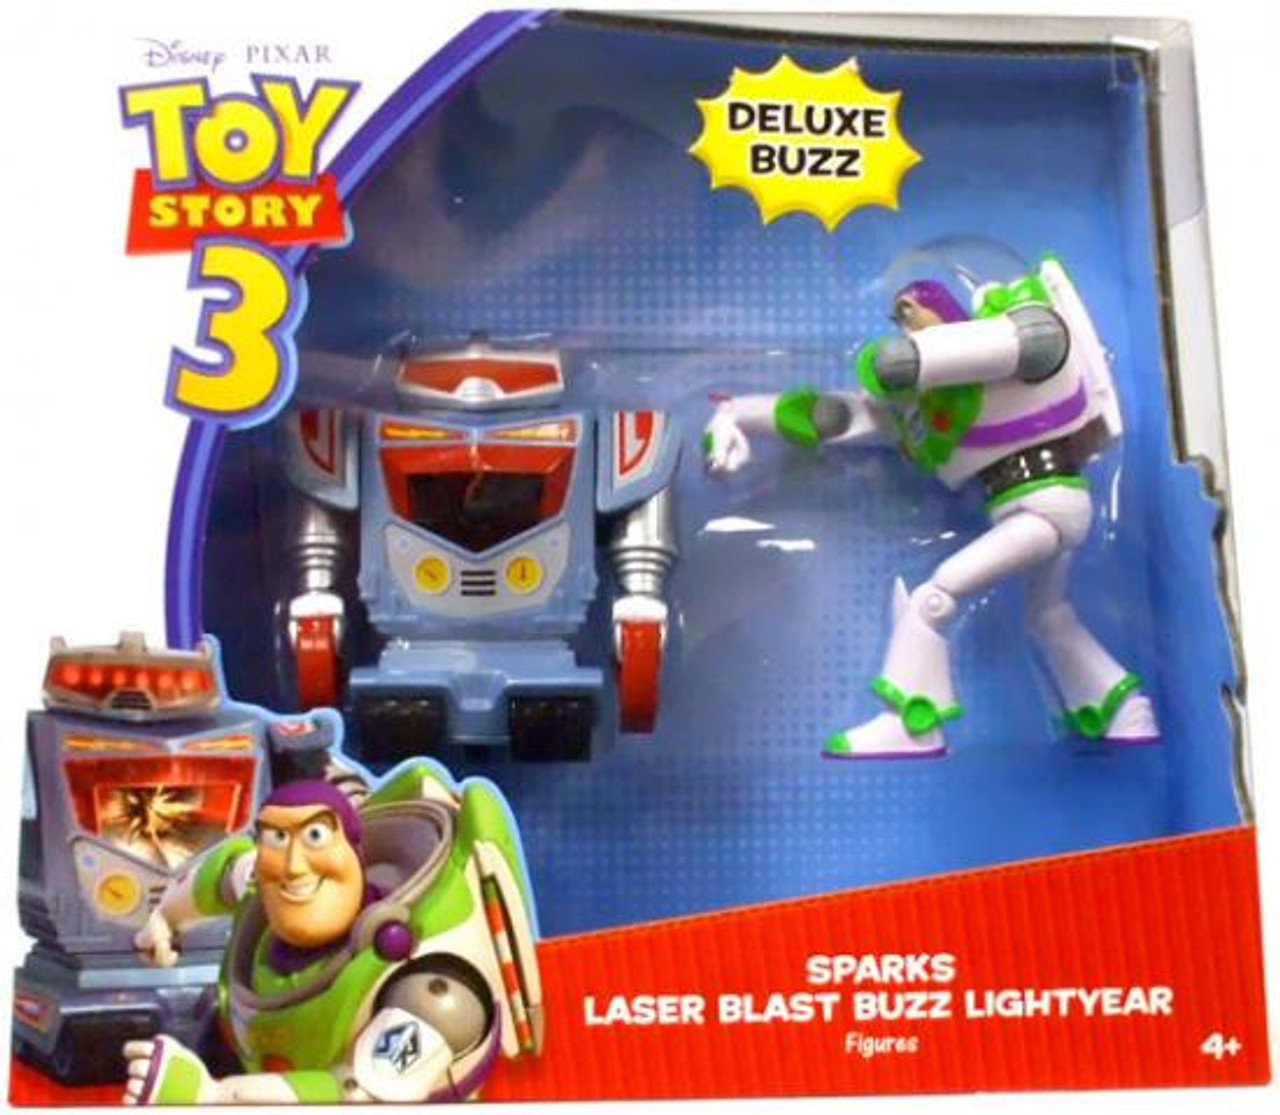 Toy Story 3 Deluxe Sparks & Laser Blast Buzz Lightyear Action Figure 2-Pack